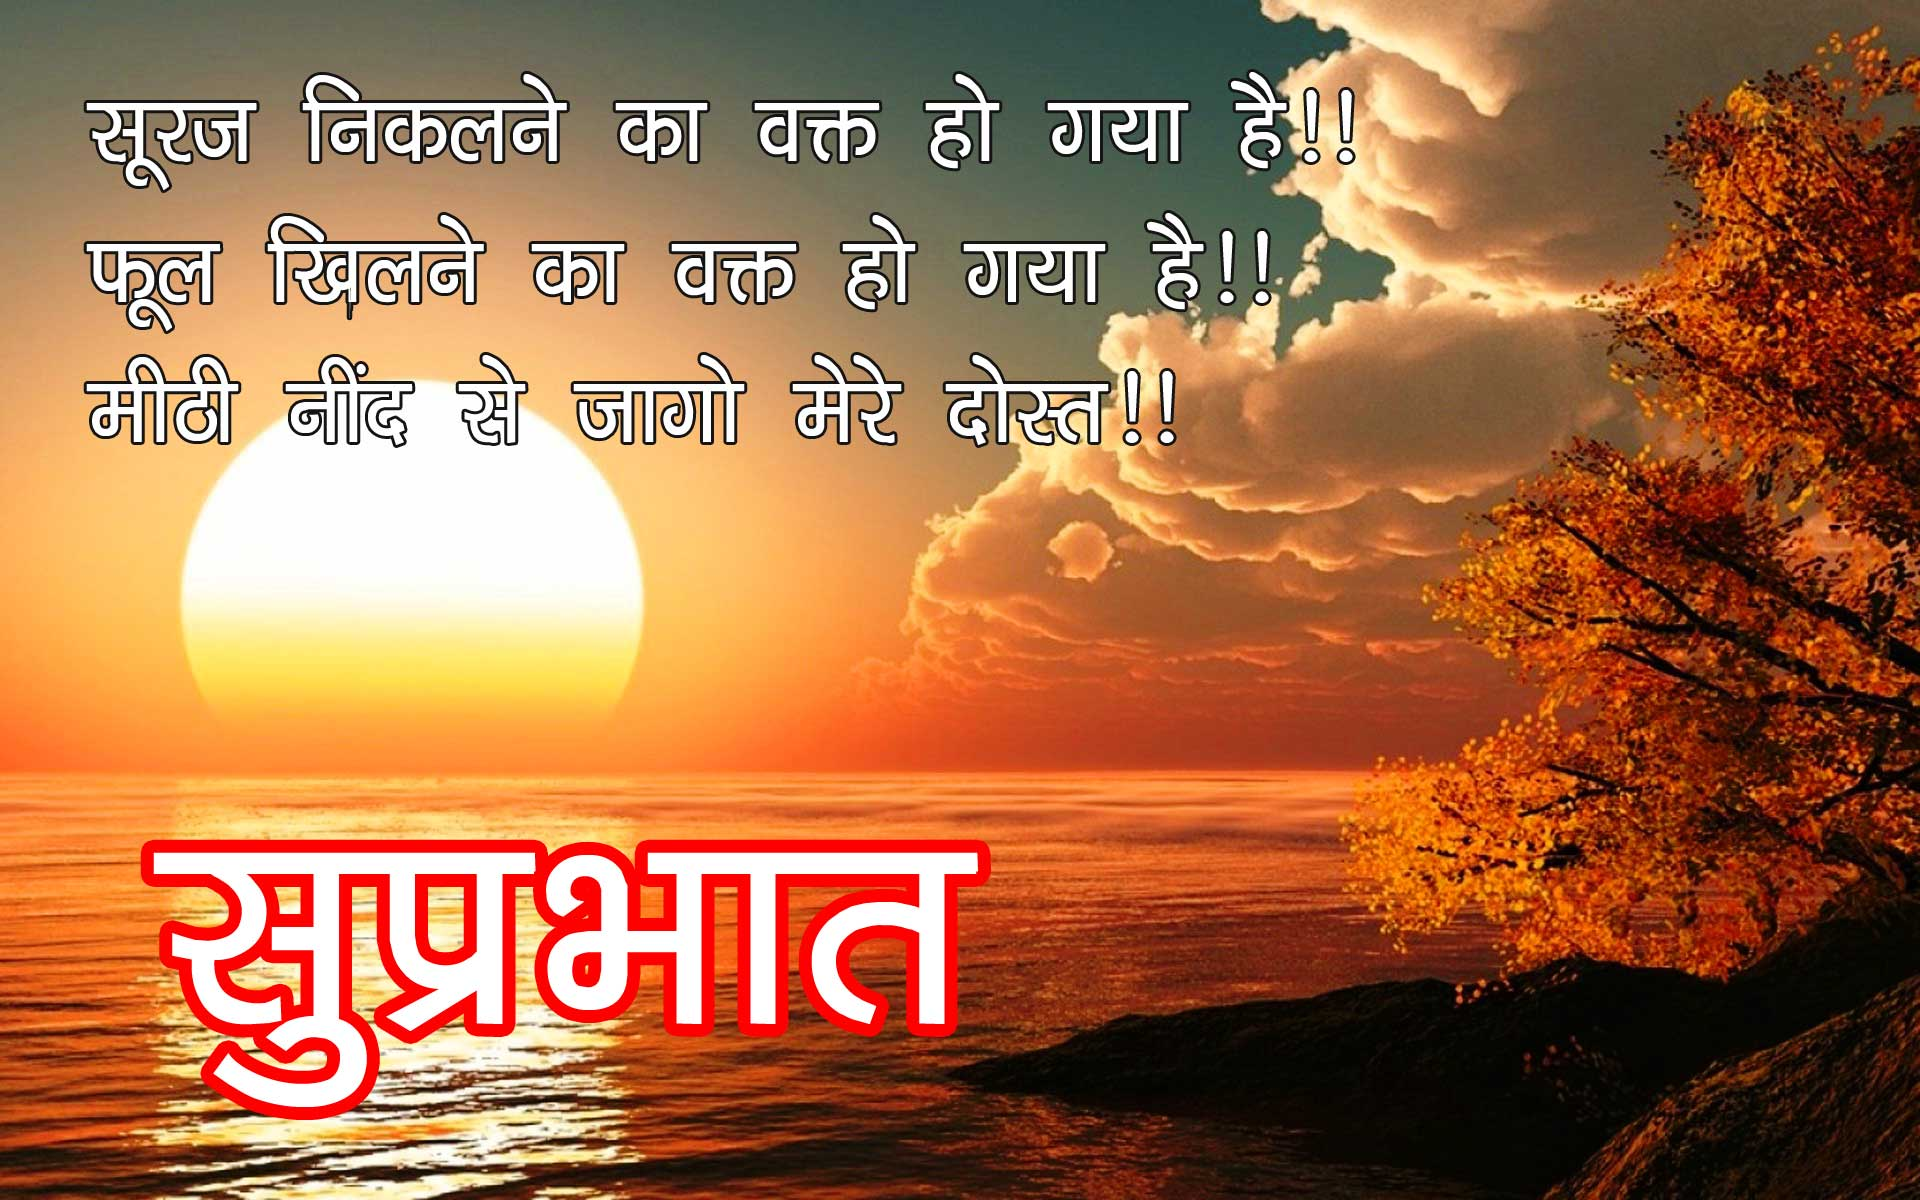 Hindi Quotes Suprabhat Pics Pictures Free Download